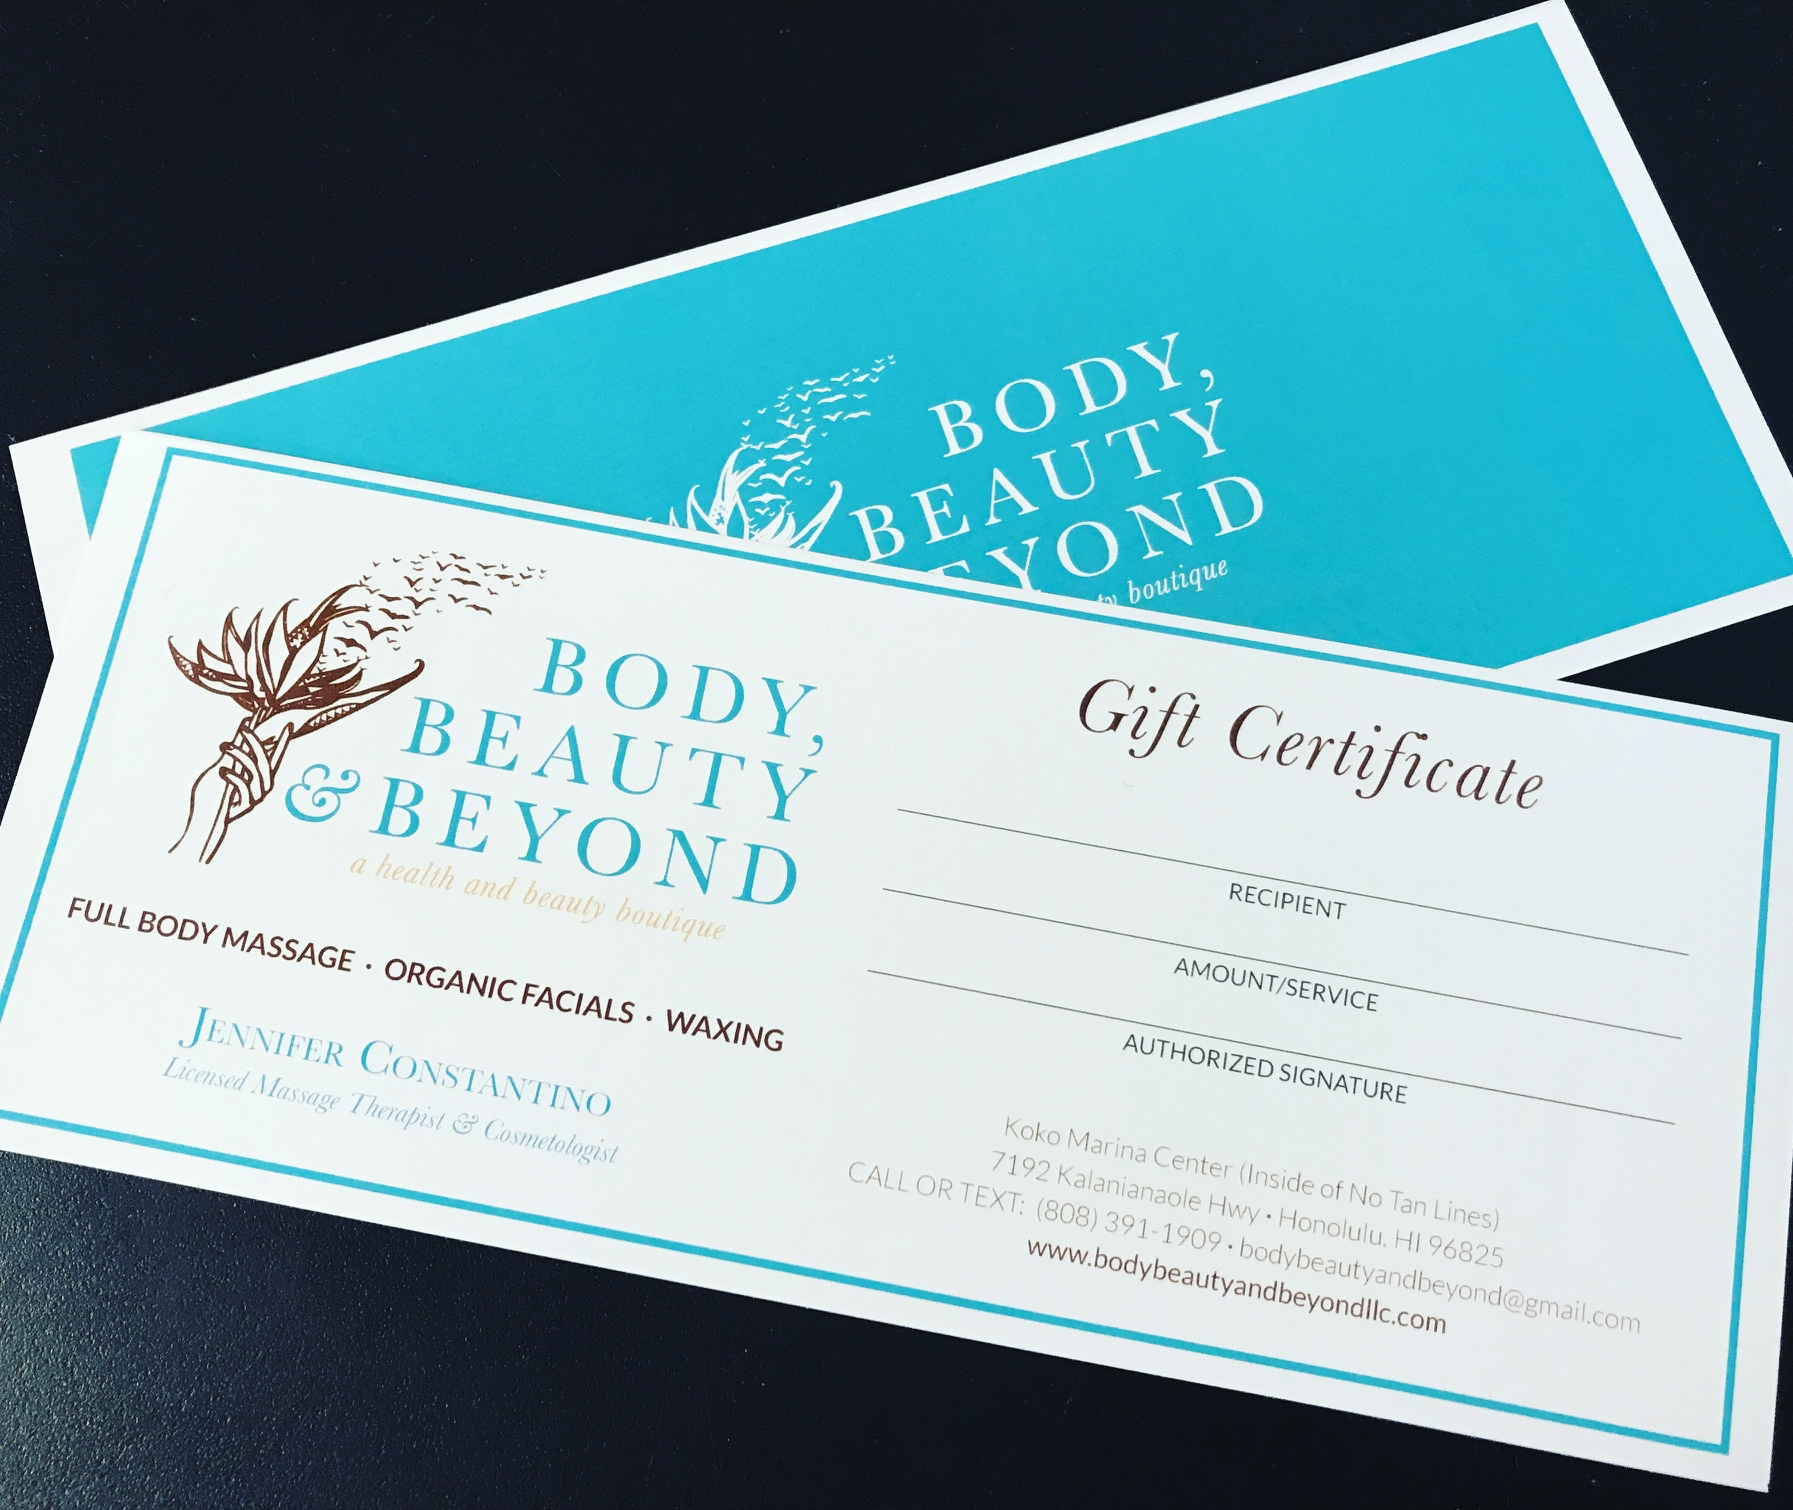 Body, Beauty And Beyond LLC In Honolulu HI | Vagaro